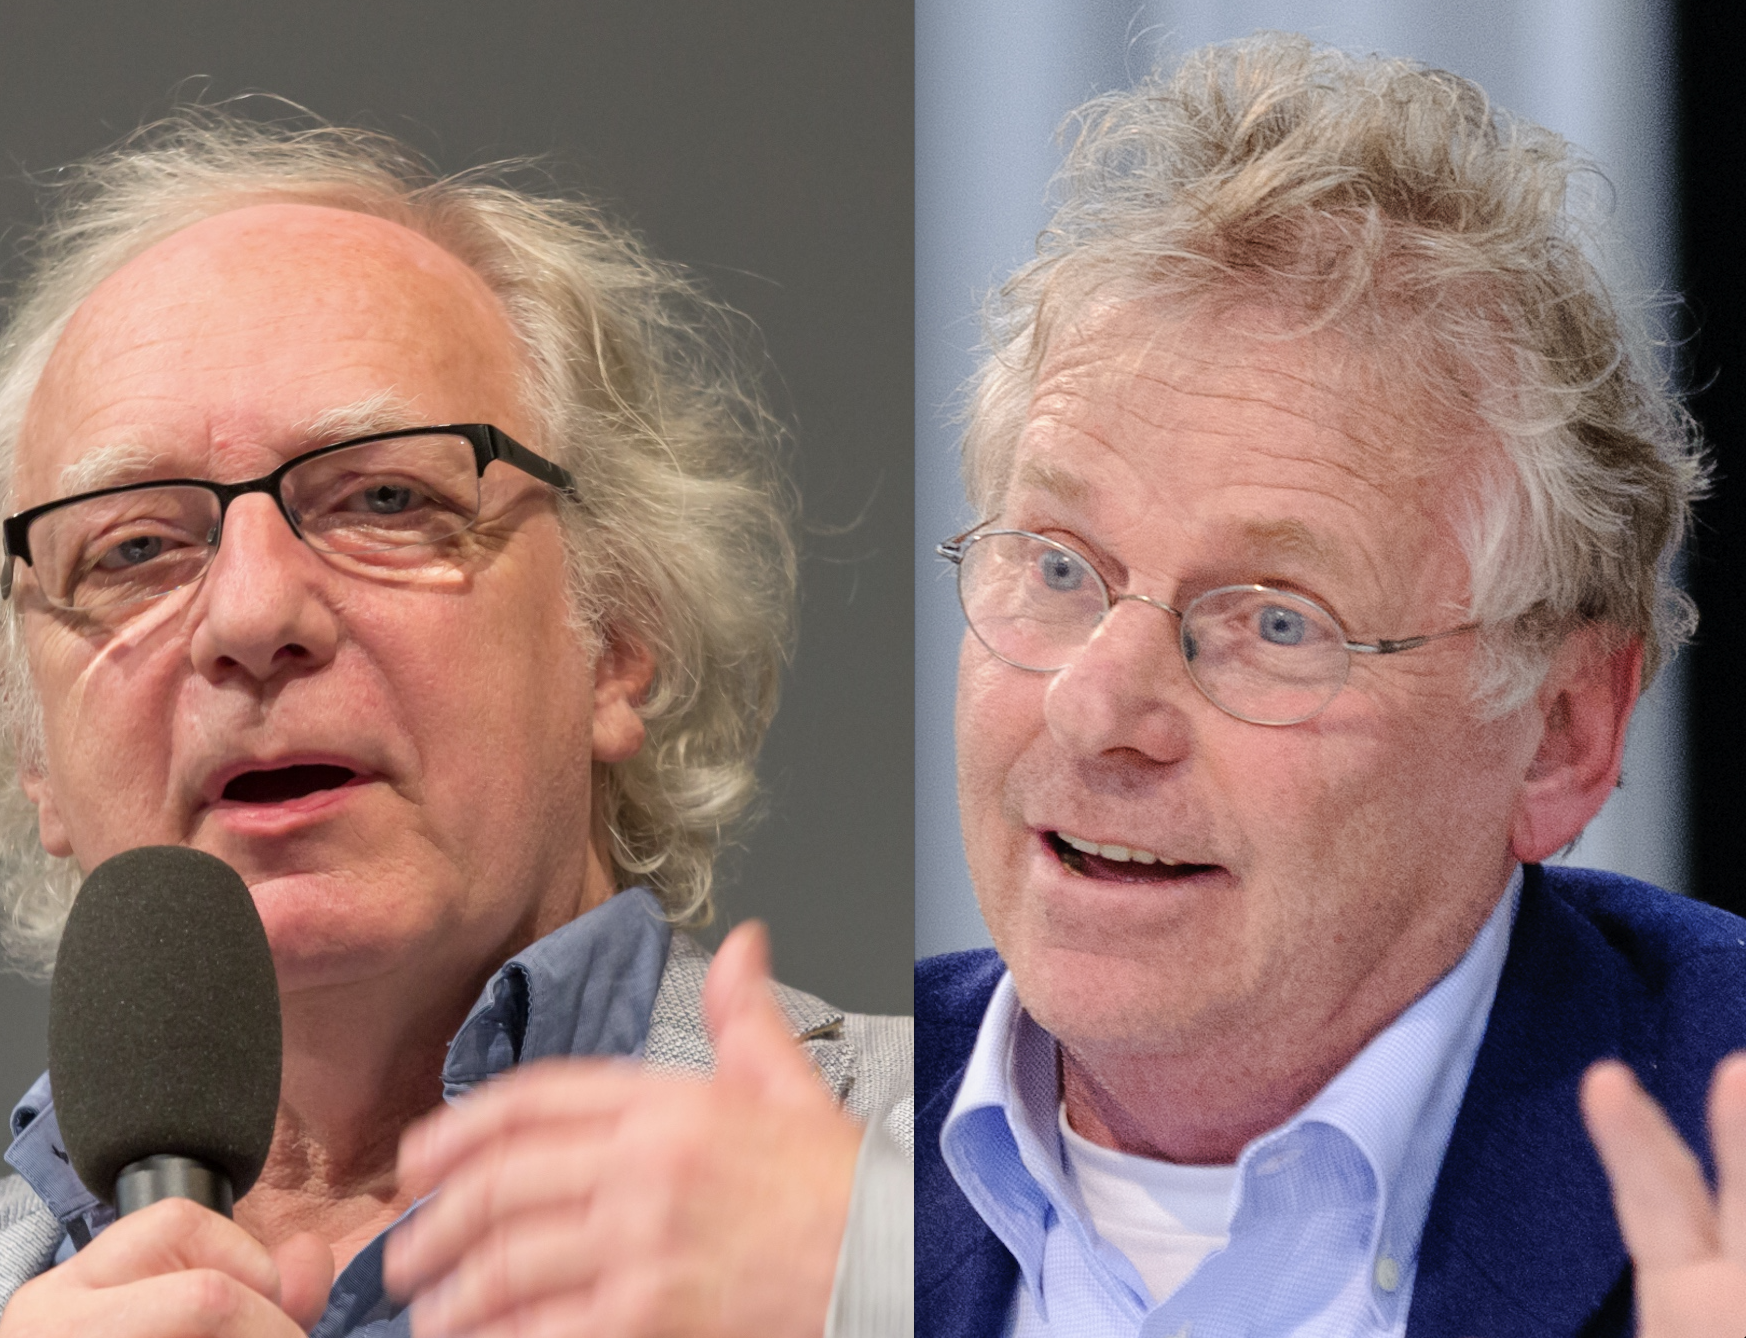 Cover for: Daniel Cohn-Bendit & Claus Leggewie to open Eurozine conference